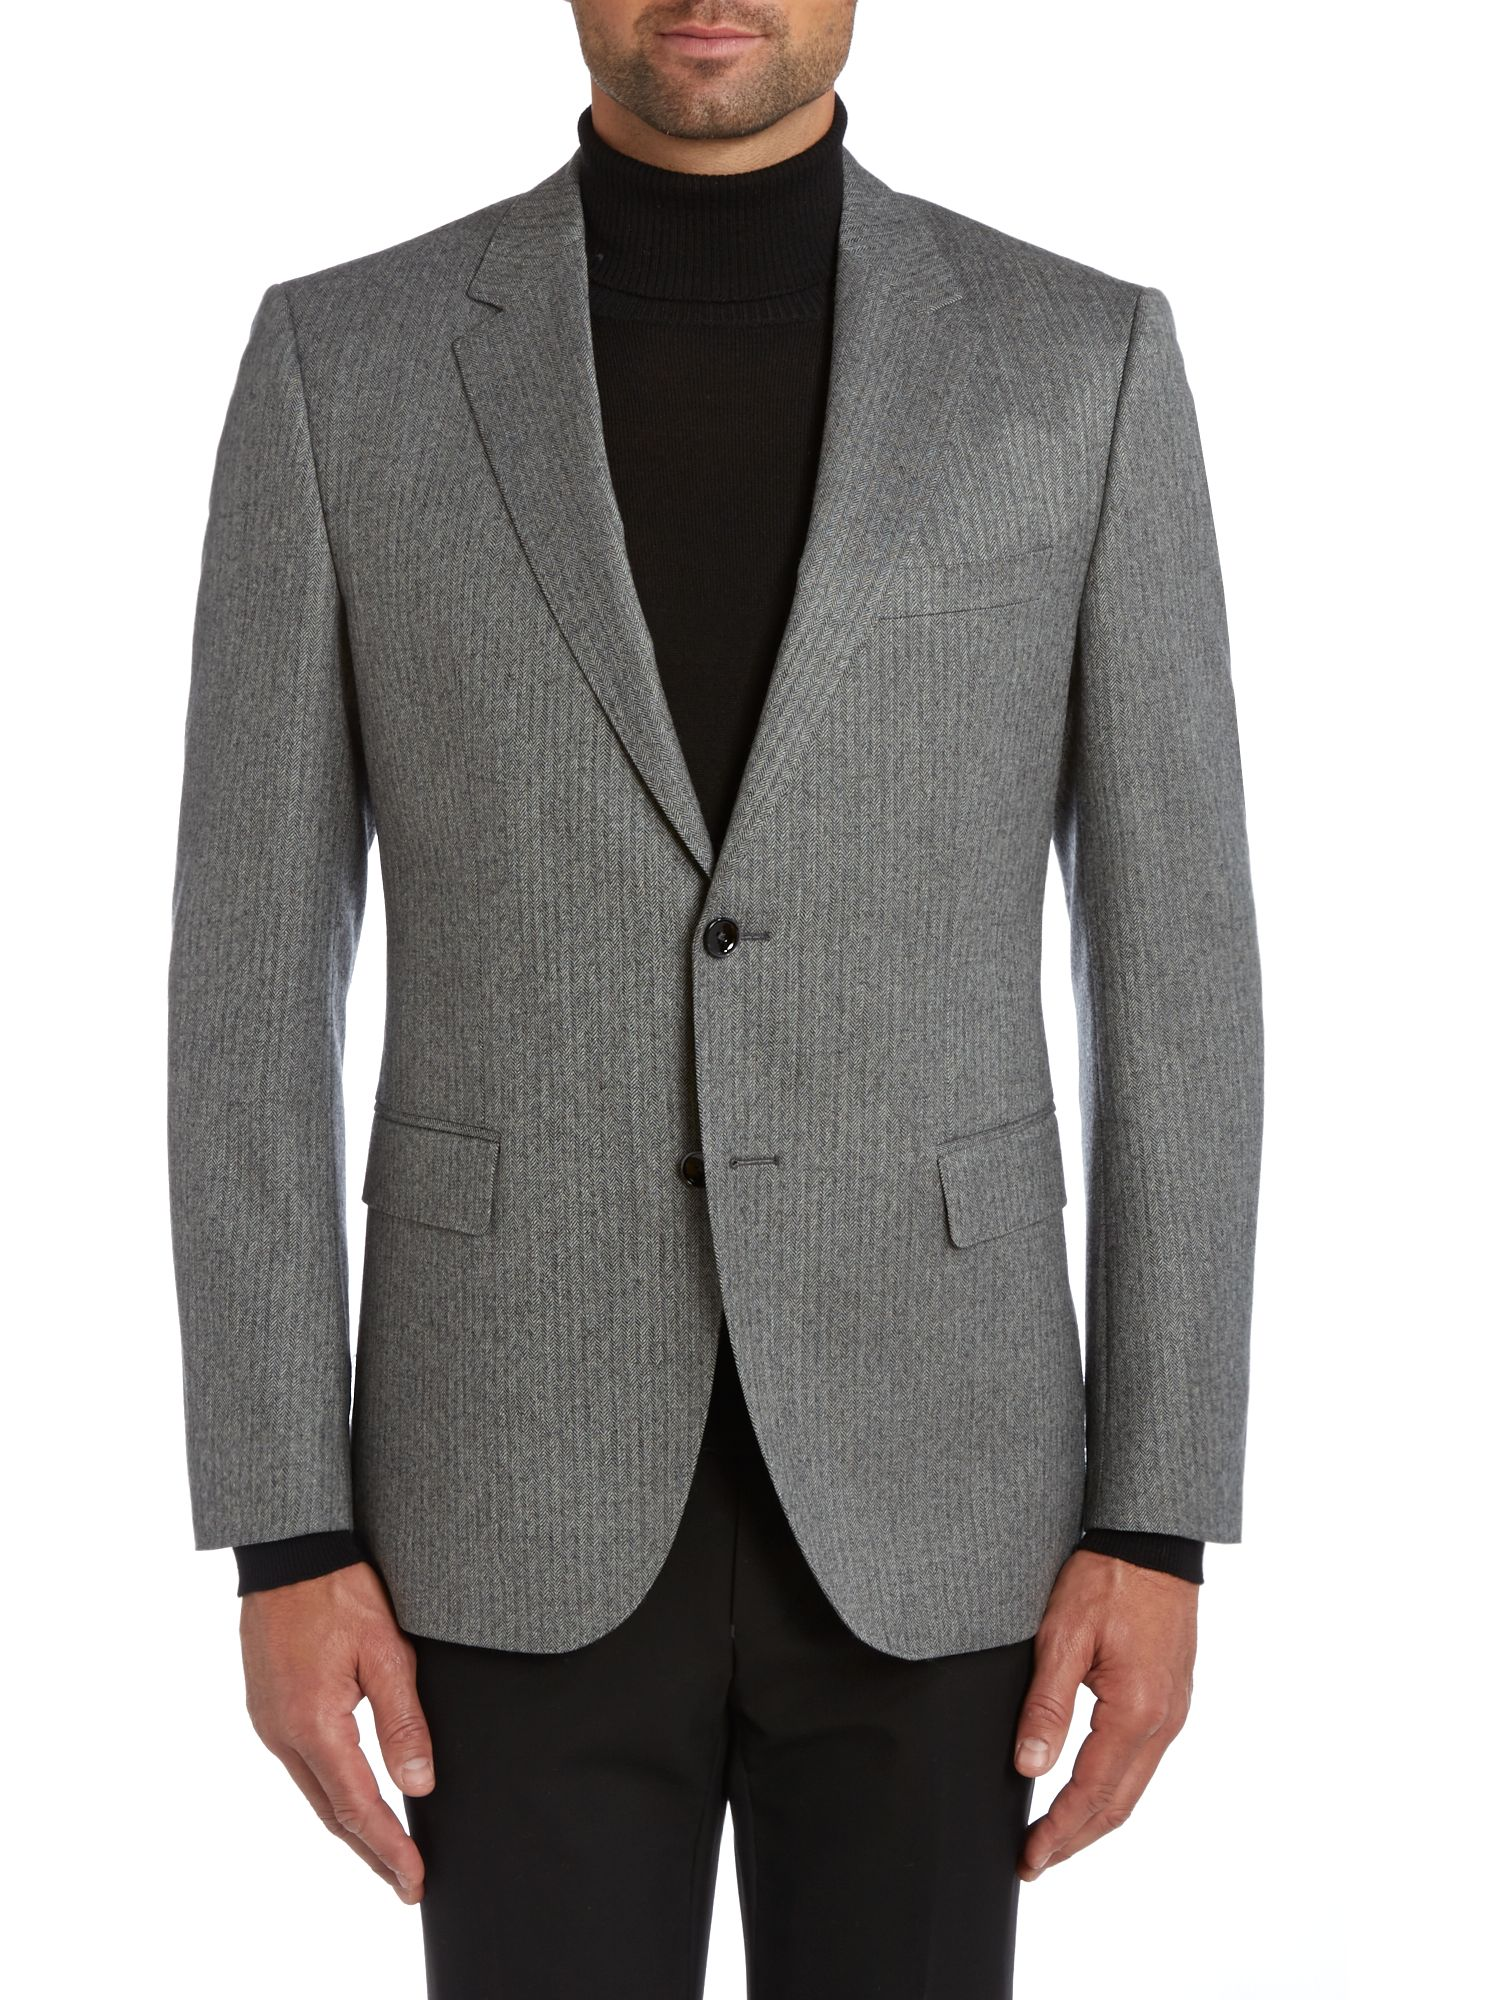 Keys regular fit herringbone jacket